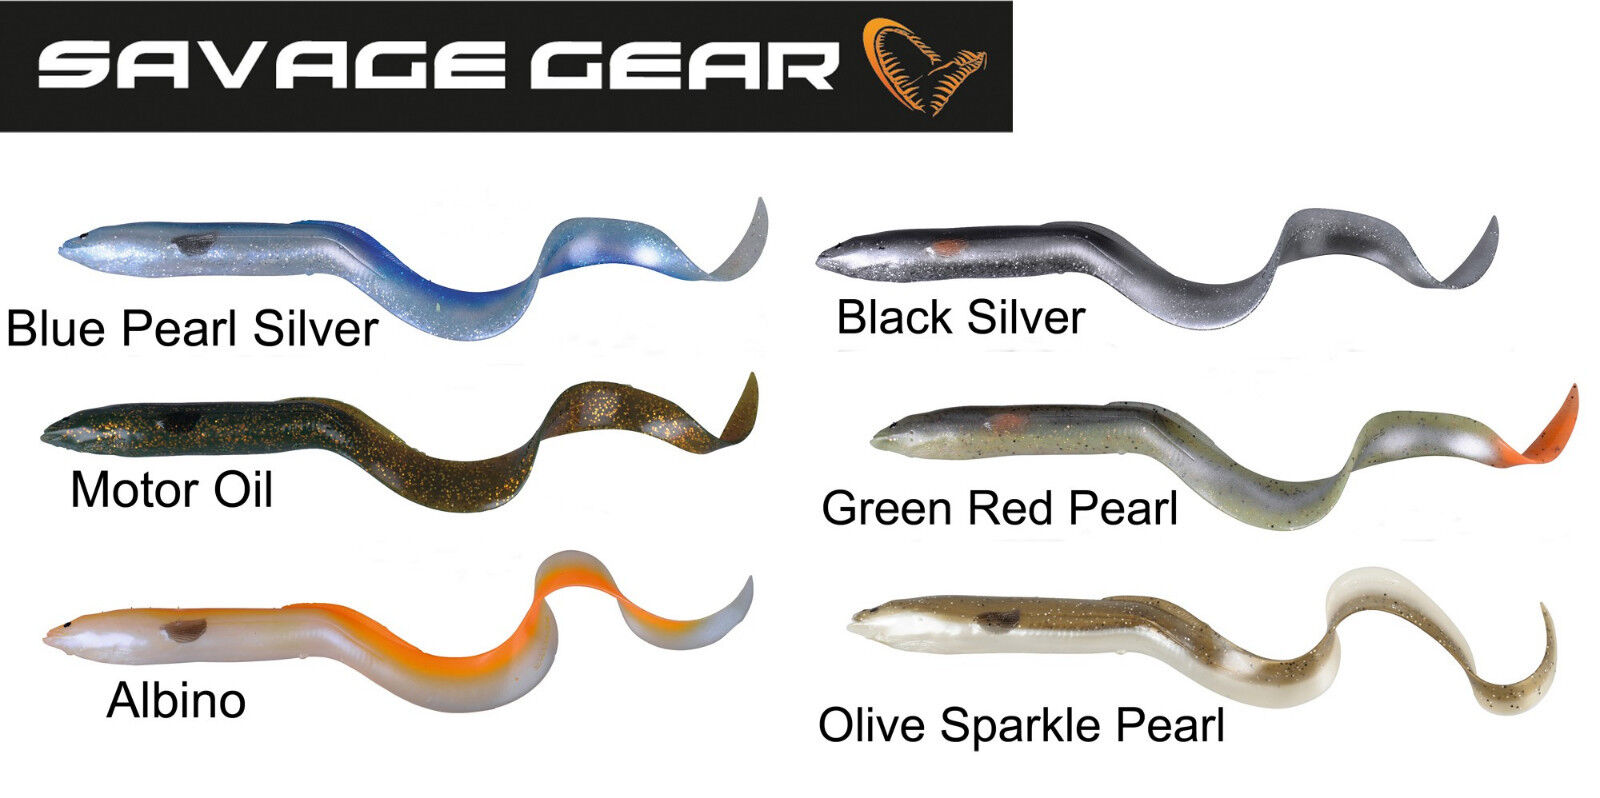 Savage gear 3d real eel 20cm-27g. 1pcs loose body or rigged. pike,cast,trolling,